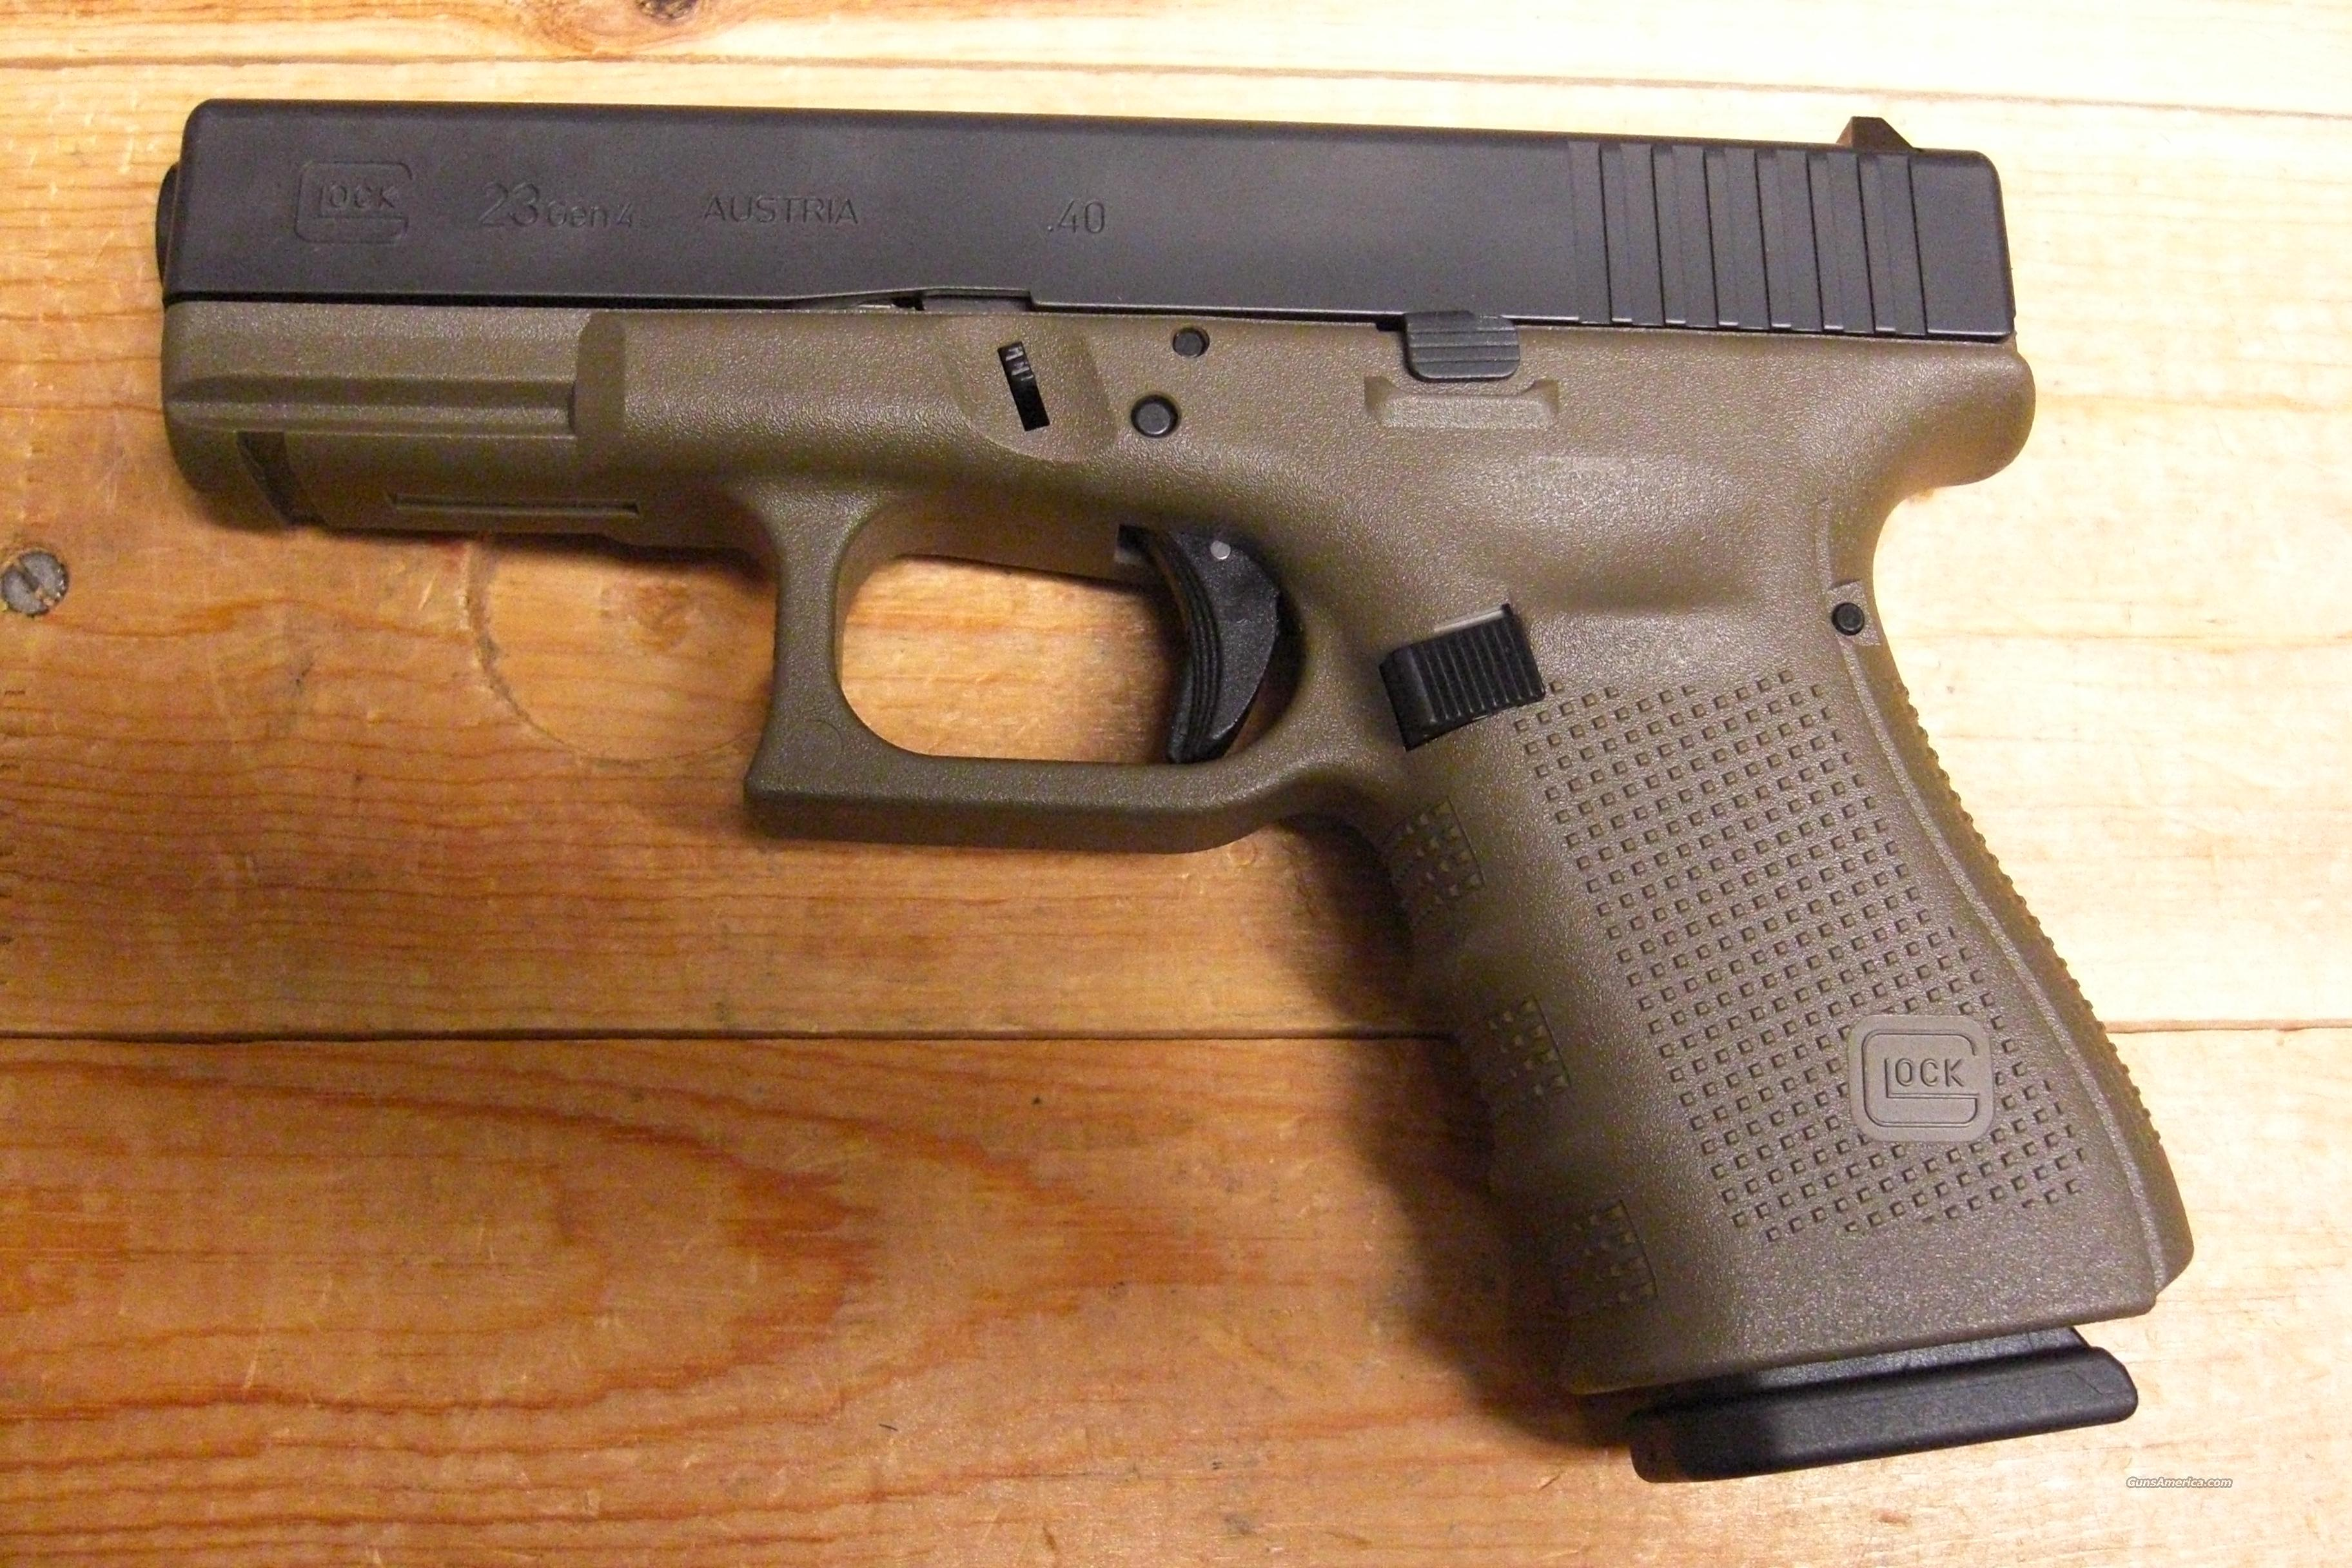 23 Gen 4 OD green frame w/3 13 rd. mags. for sale